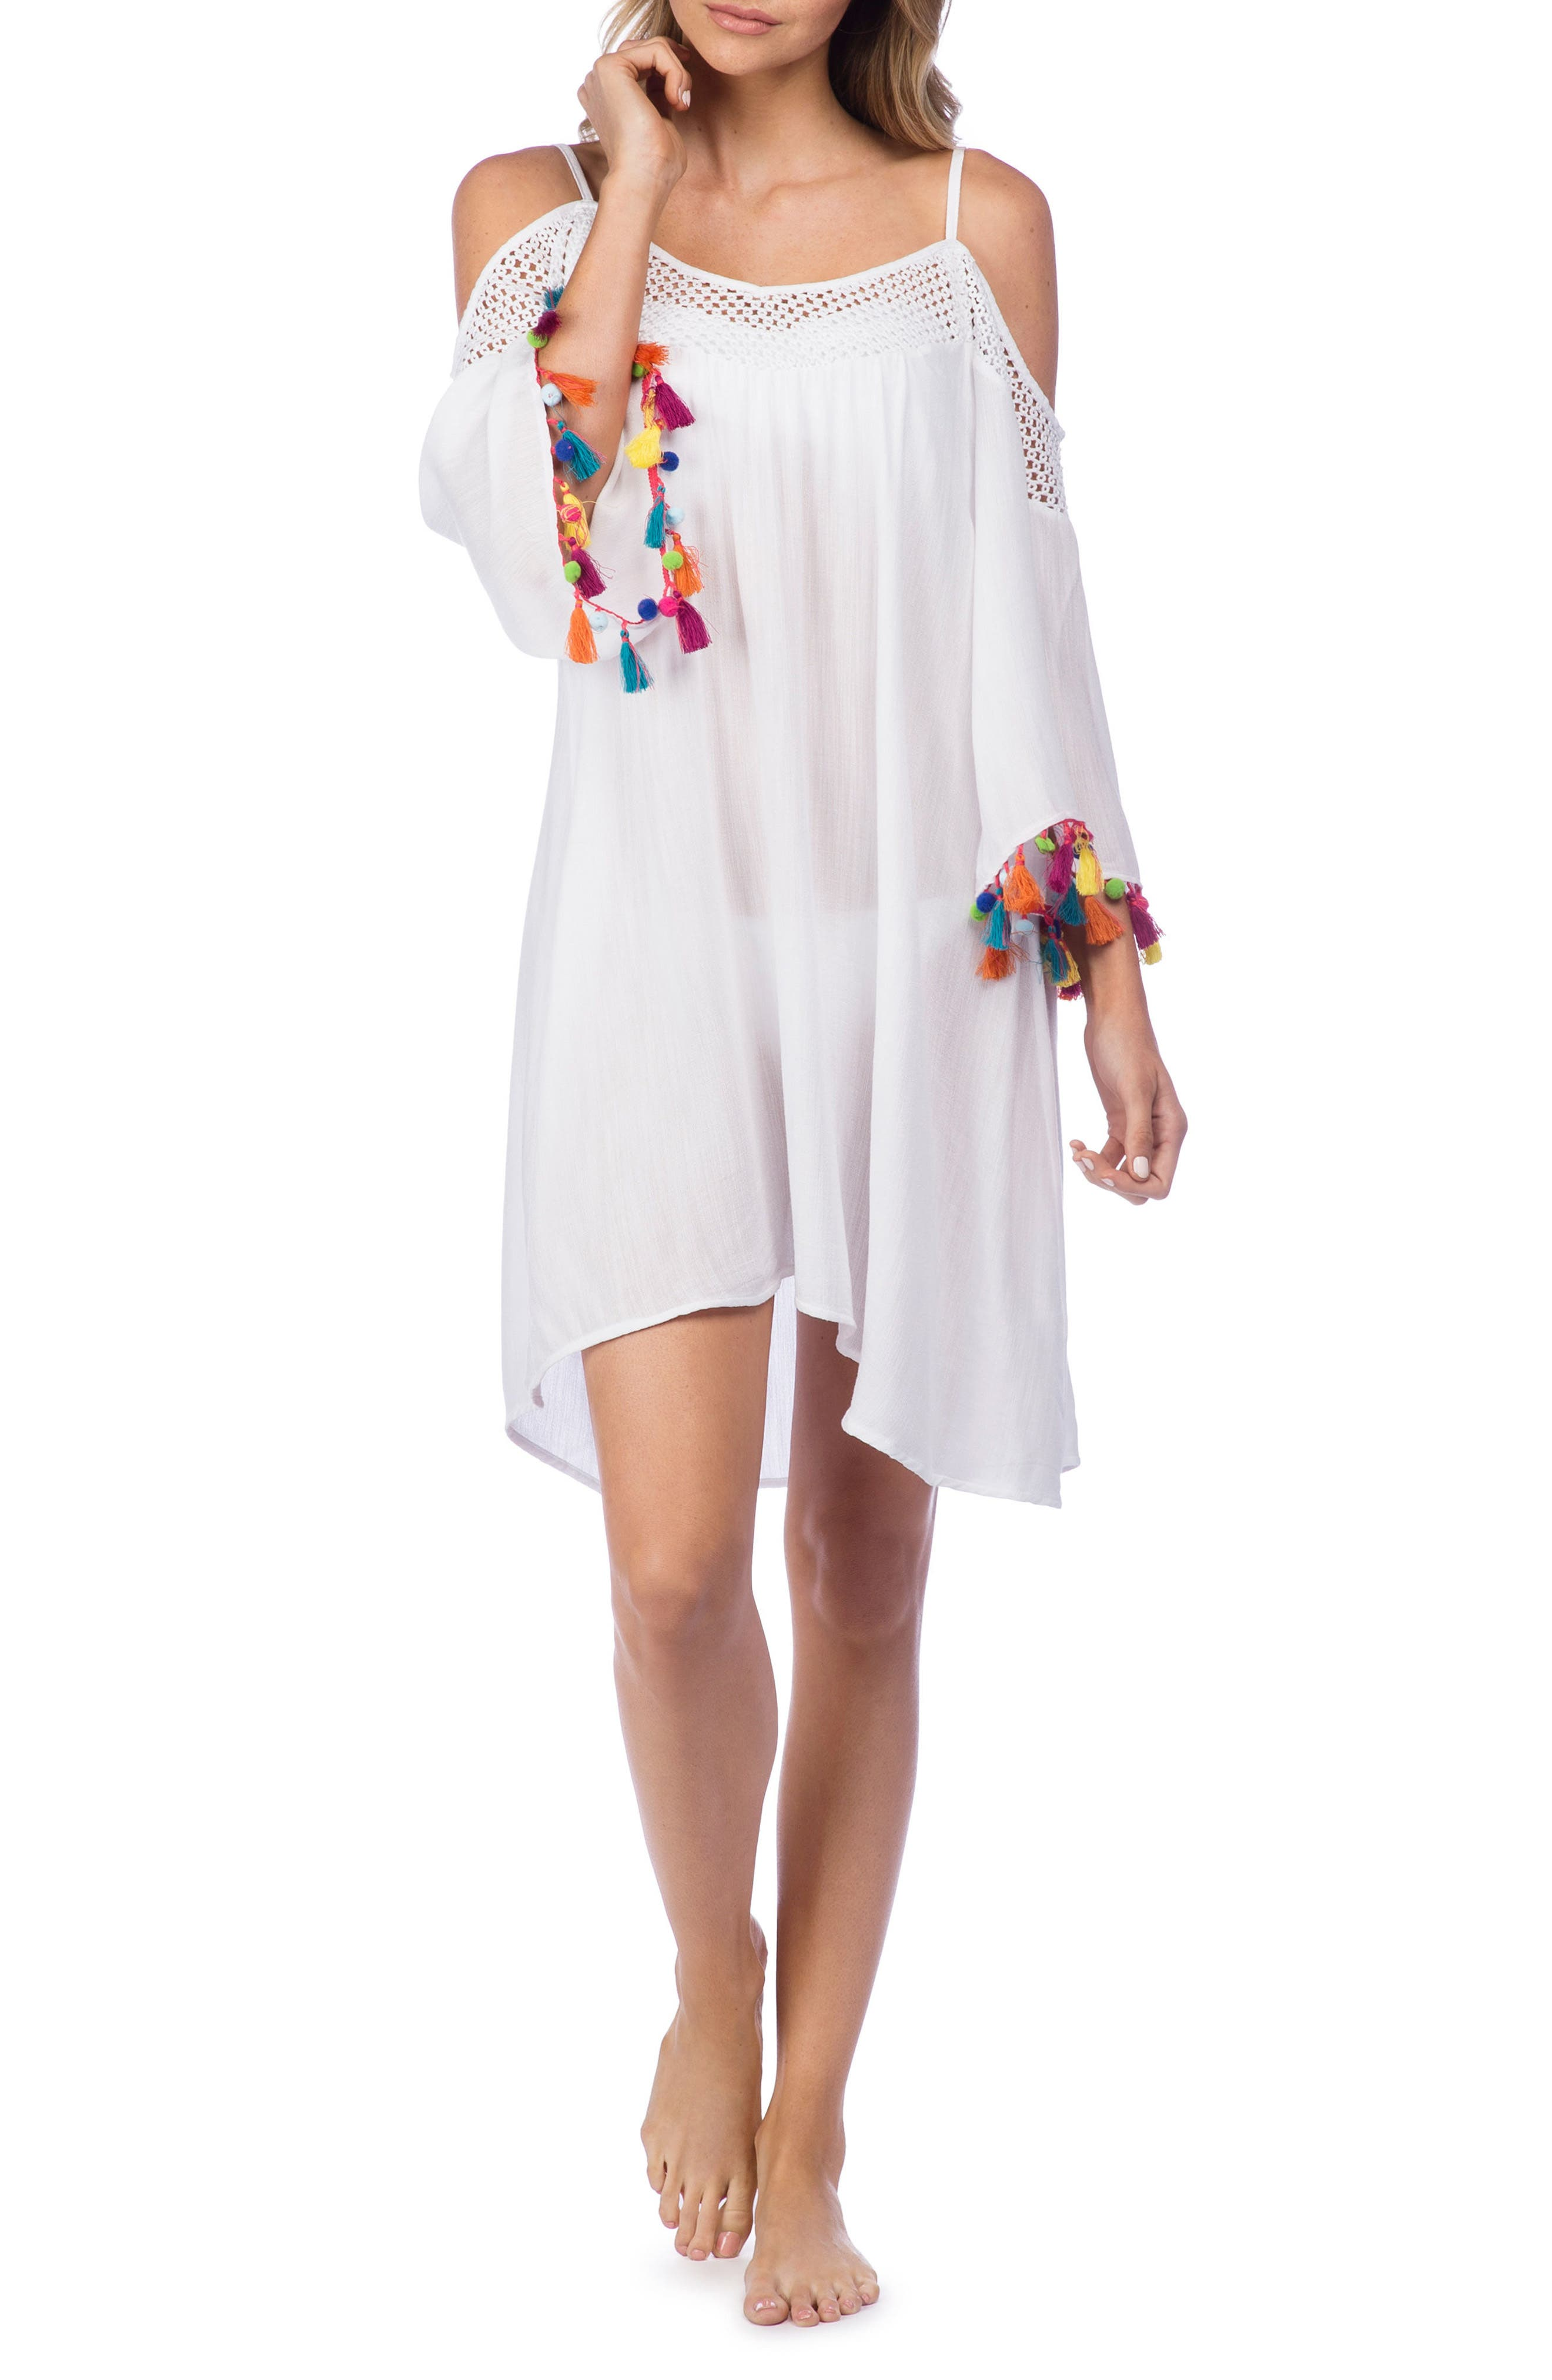 Nanette Lepore Cha Cha Cha Off the Shoulder Cover-Up